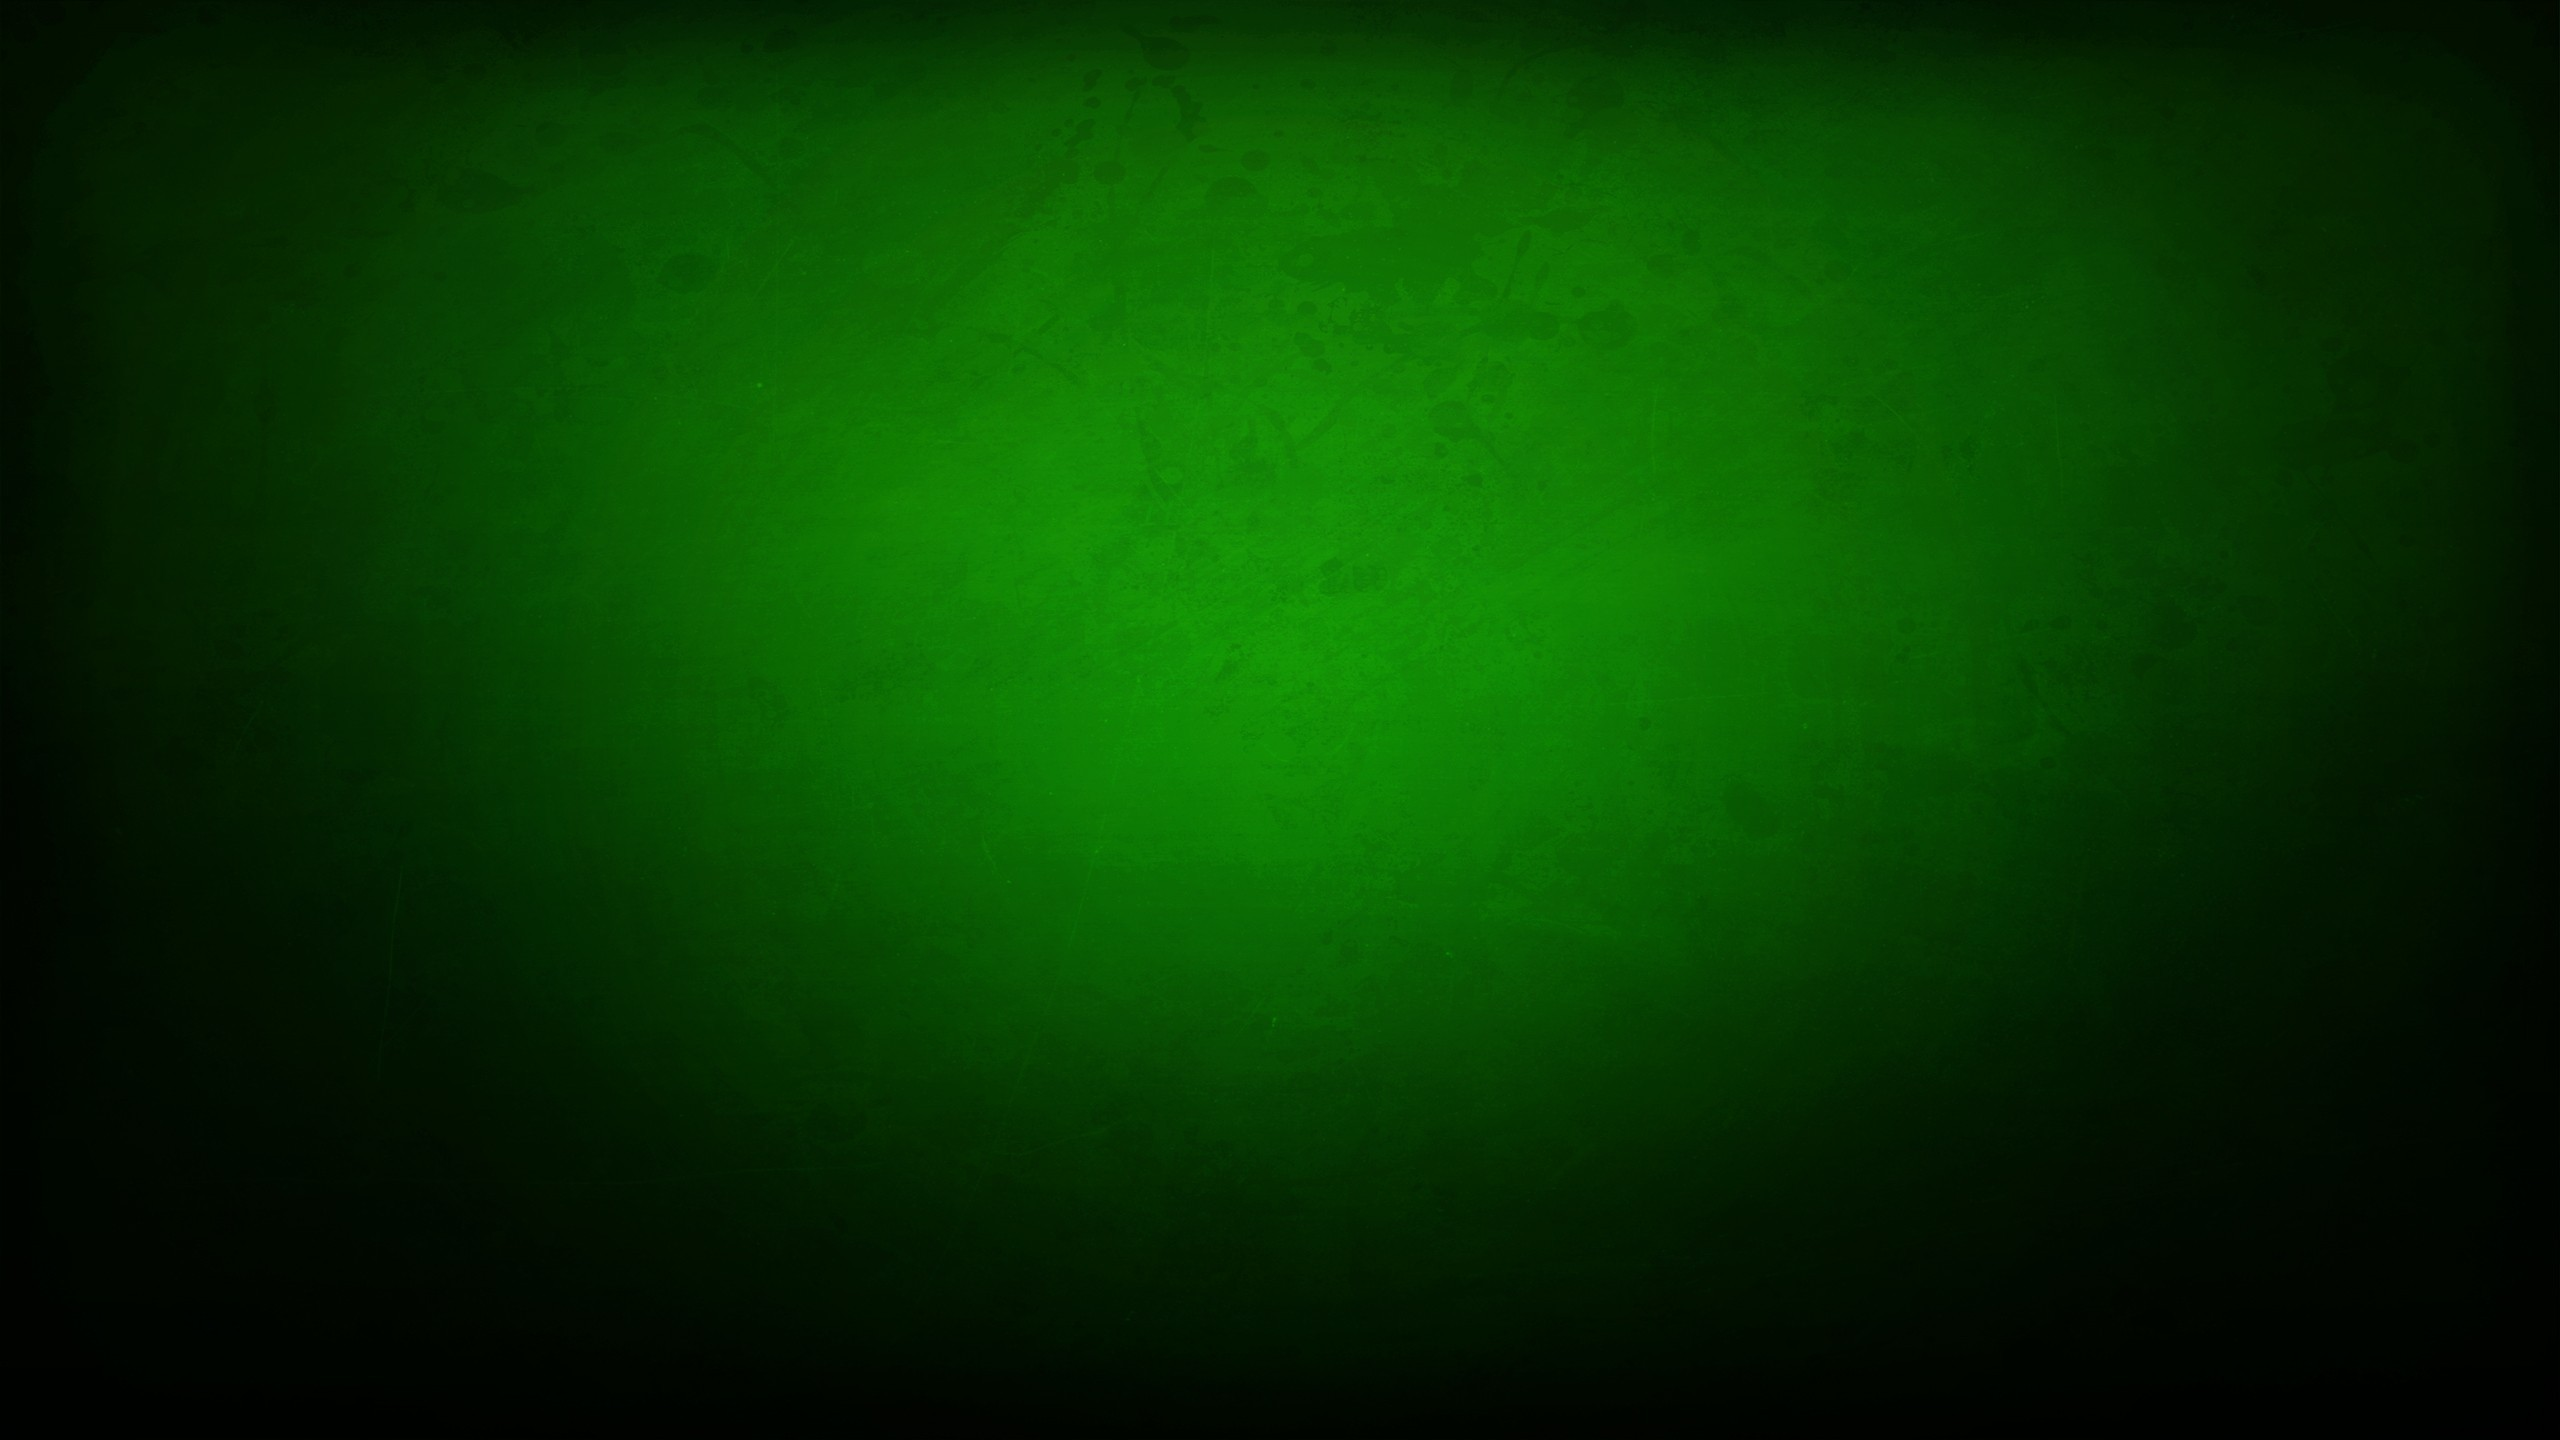 Grunge Green YouTube Channel Cover